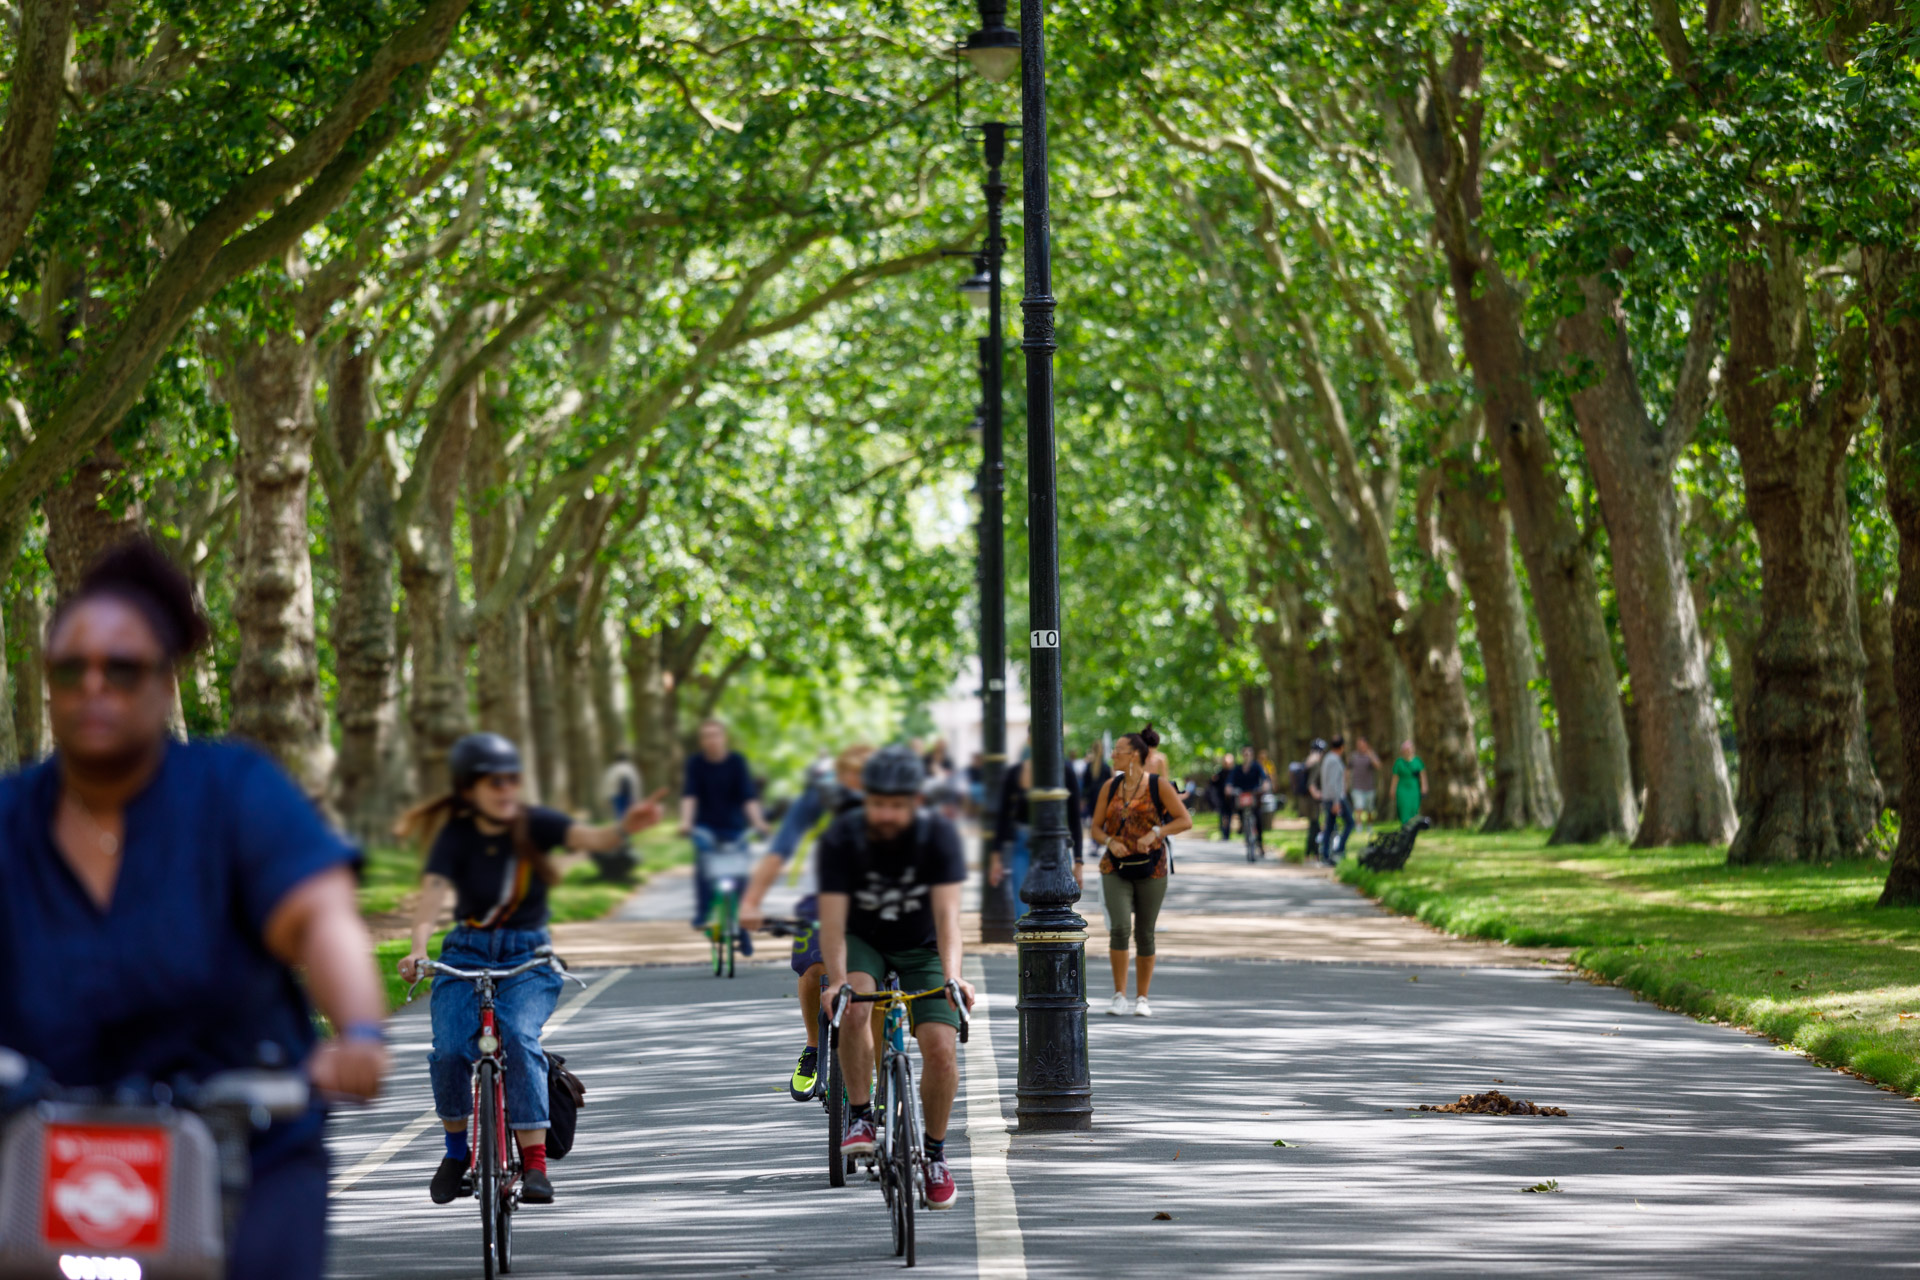 People on bikes ride along a wide, tree-lined pathway through a park